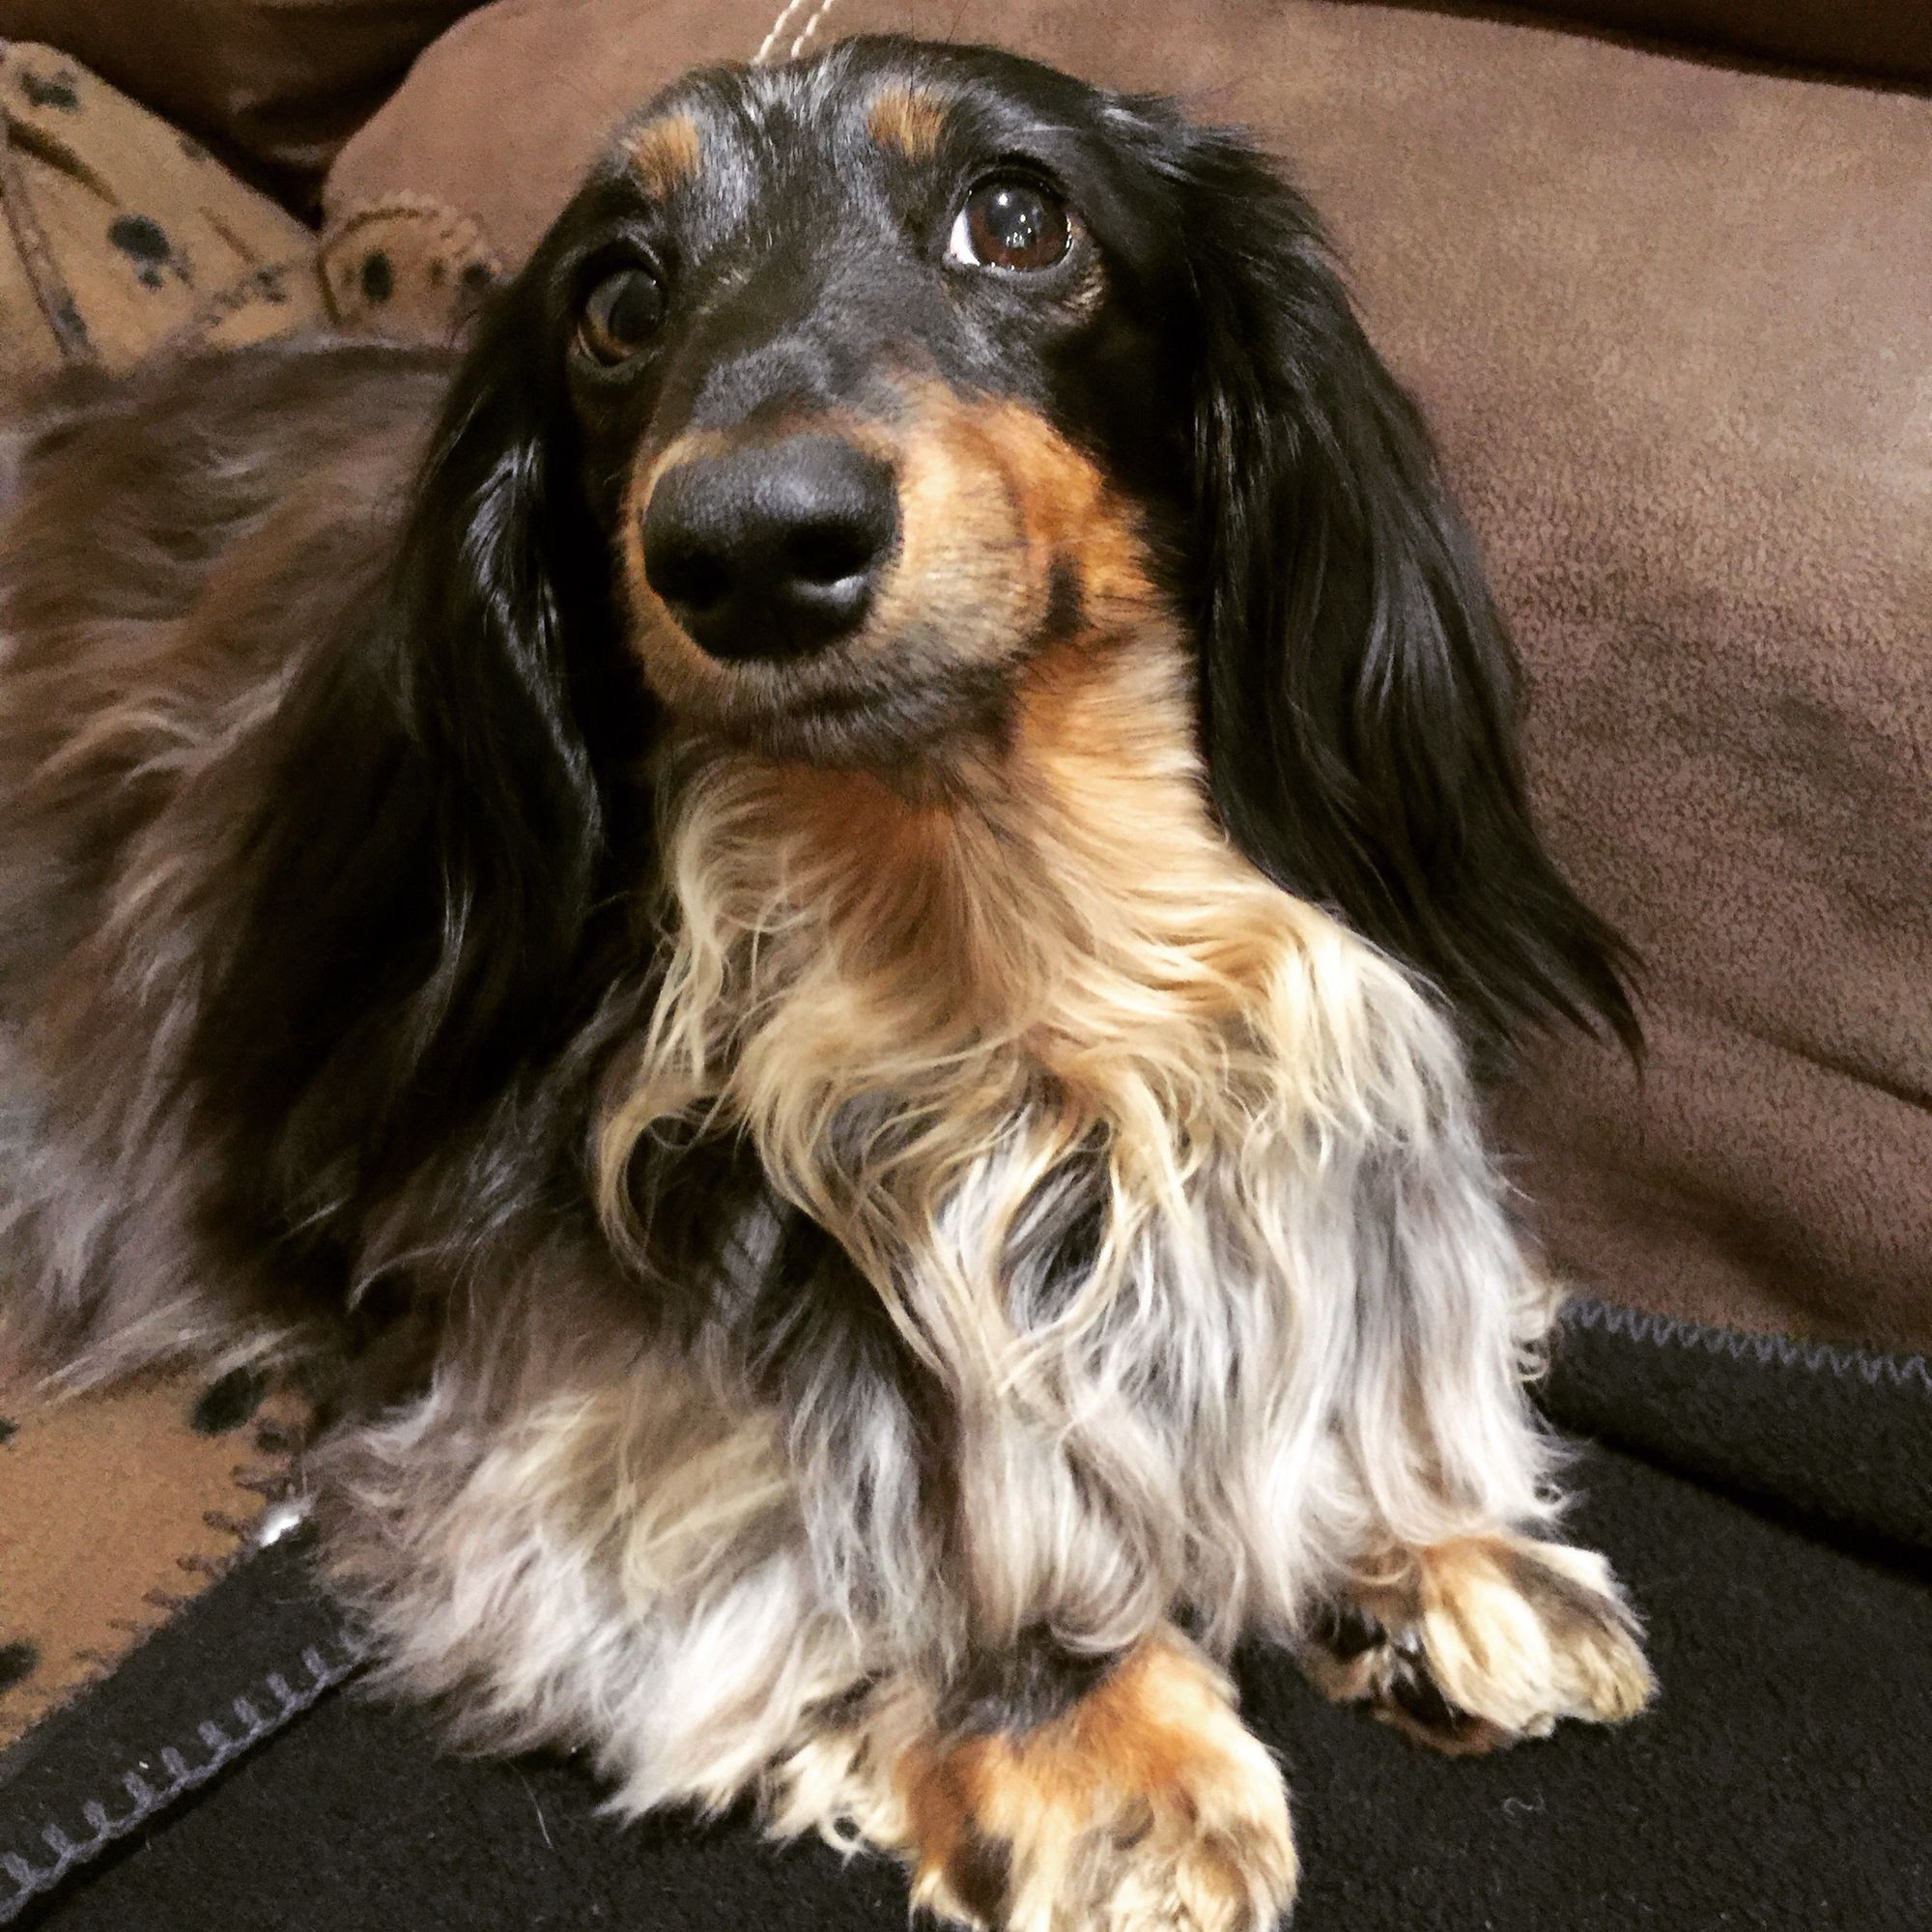 Long Haired Silver Dapple Dachshund Abby Dapple Dachshund Dachshund Breed Long Haired Dachshund